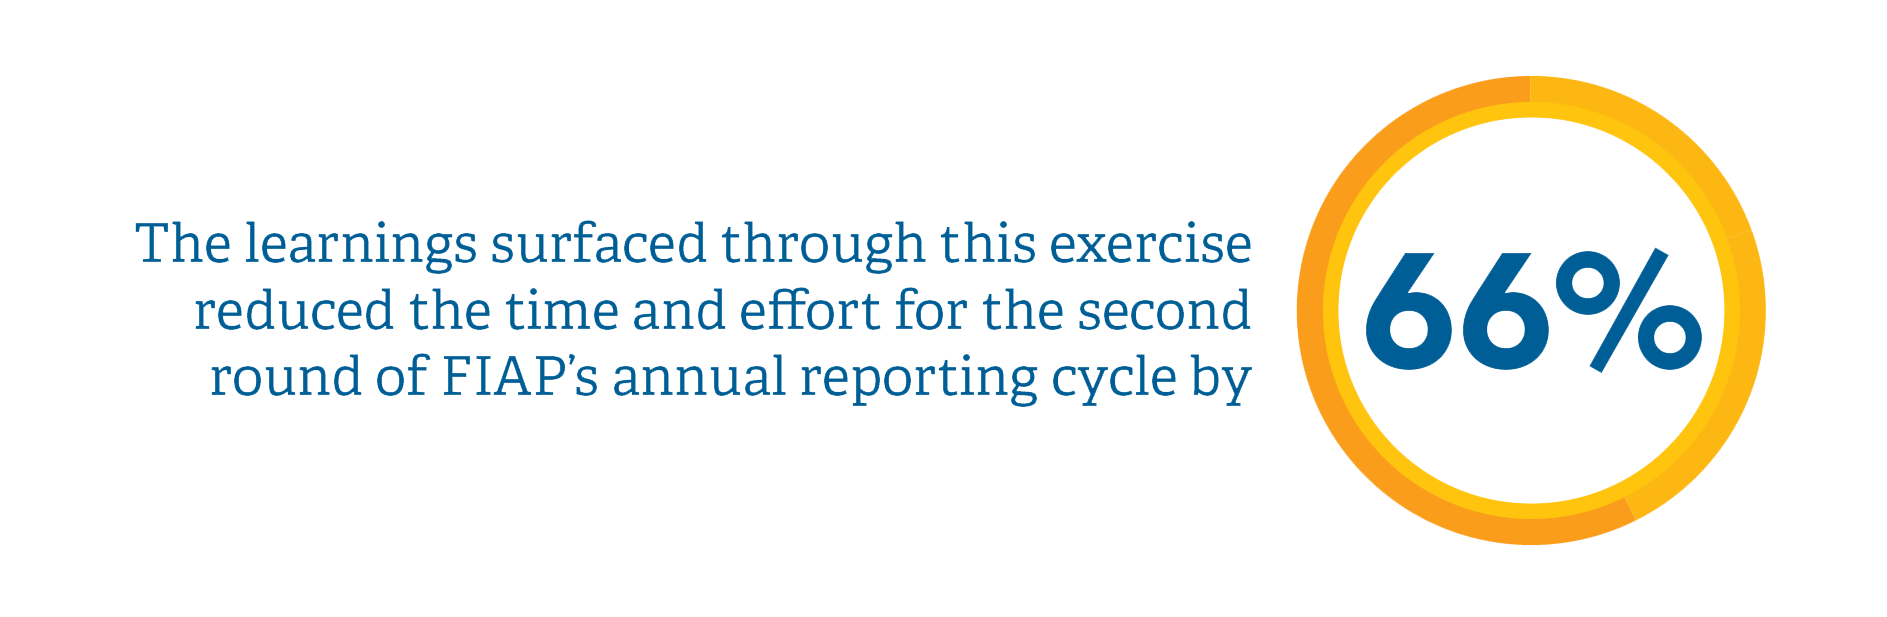 The learnings surfaced through this exercise reduced the time and effort for the second round of FIAP's annual reporting cycle by 66%.